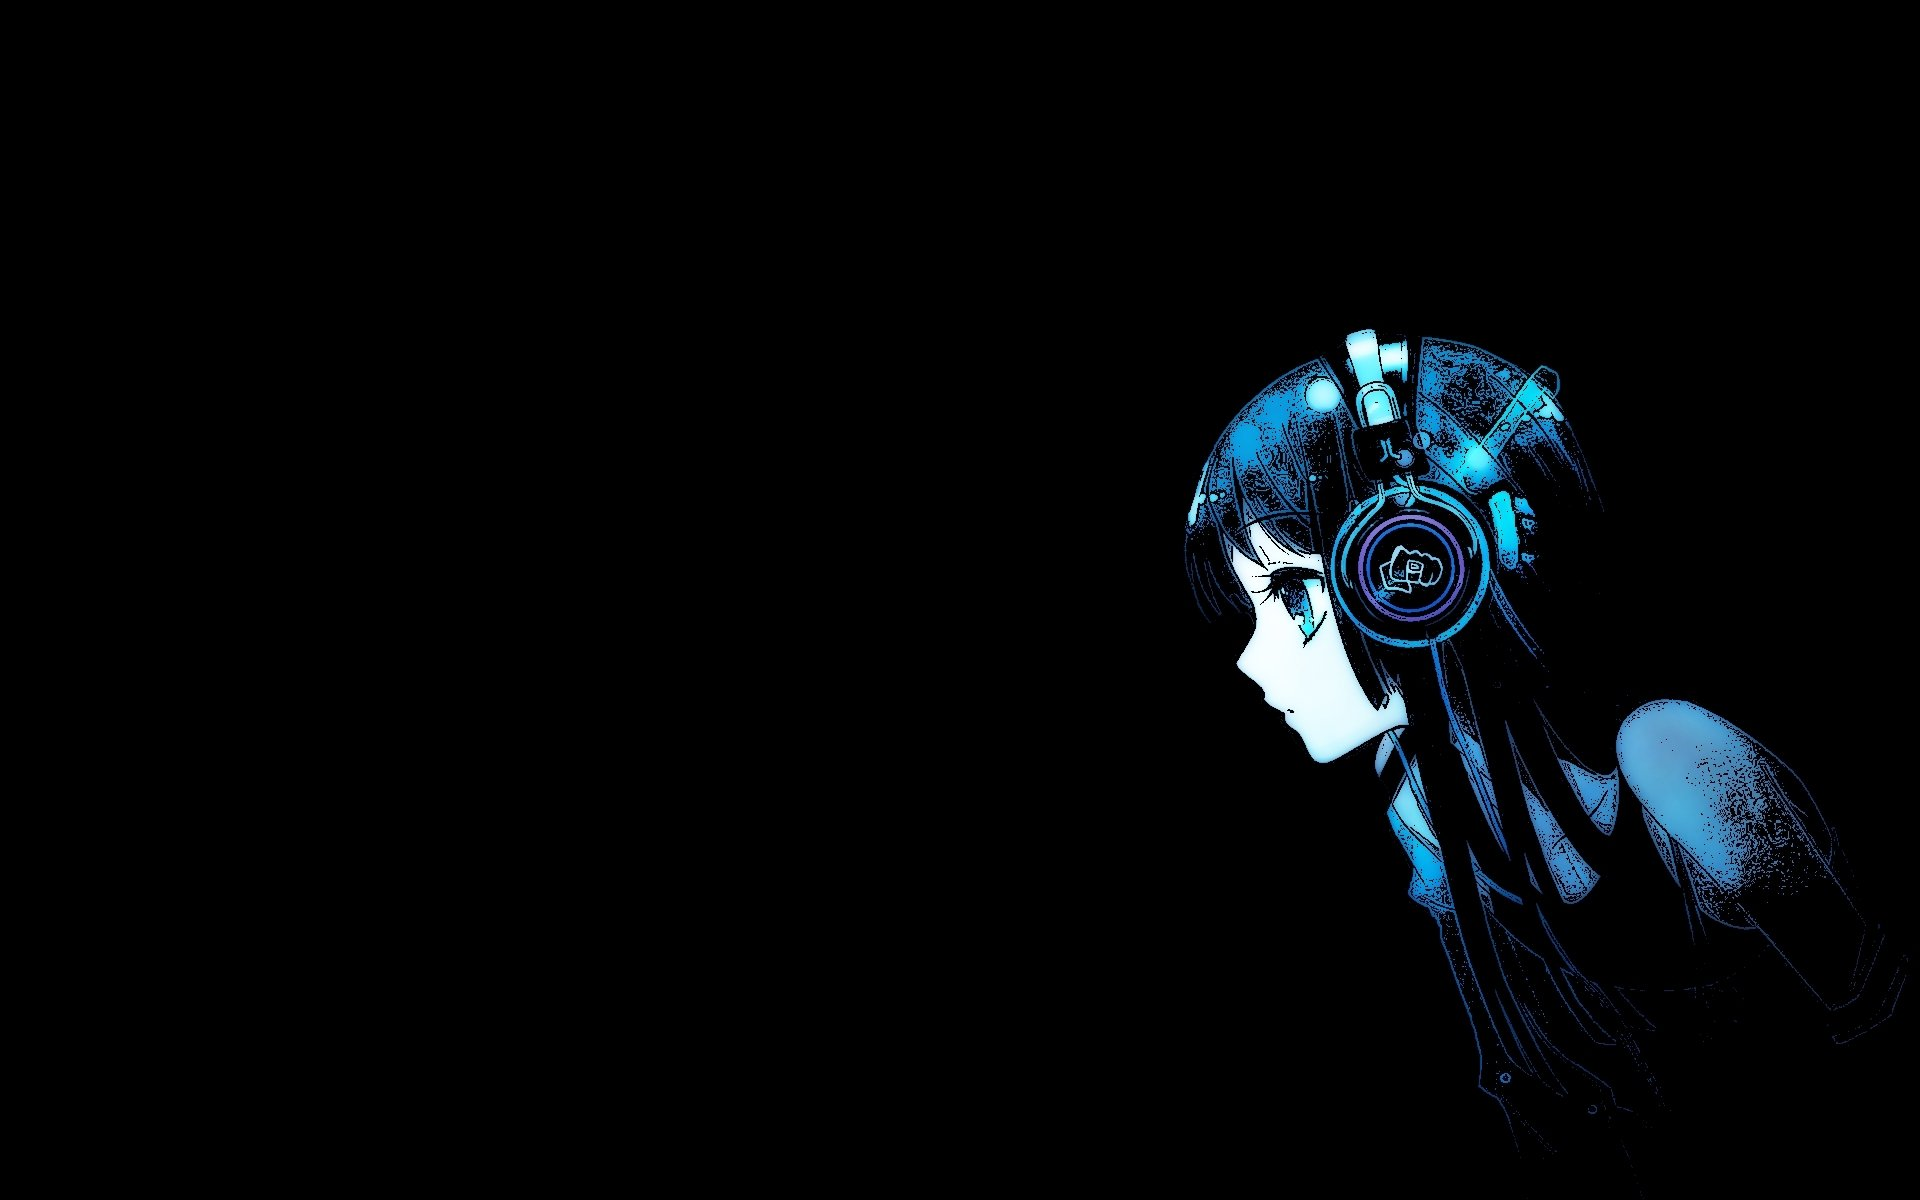 Anime Headphones Wallpapers Mobile : Anime Wallpaper  Altilici Anime Headphones Wallpapers Group  1920x1200